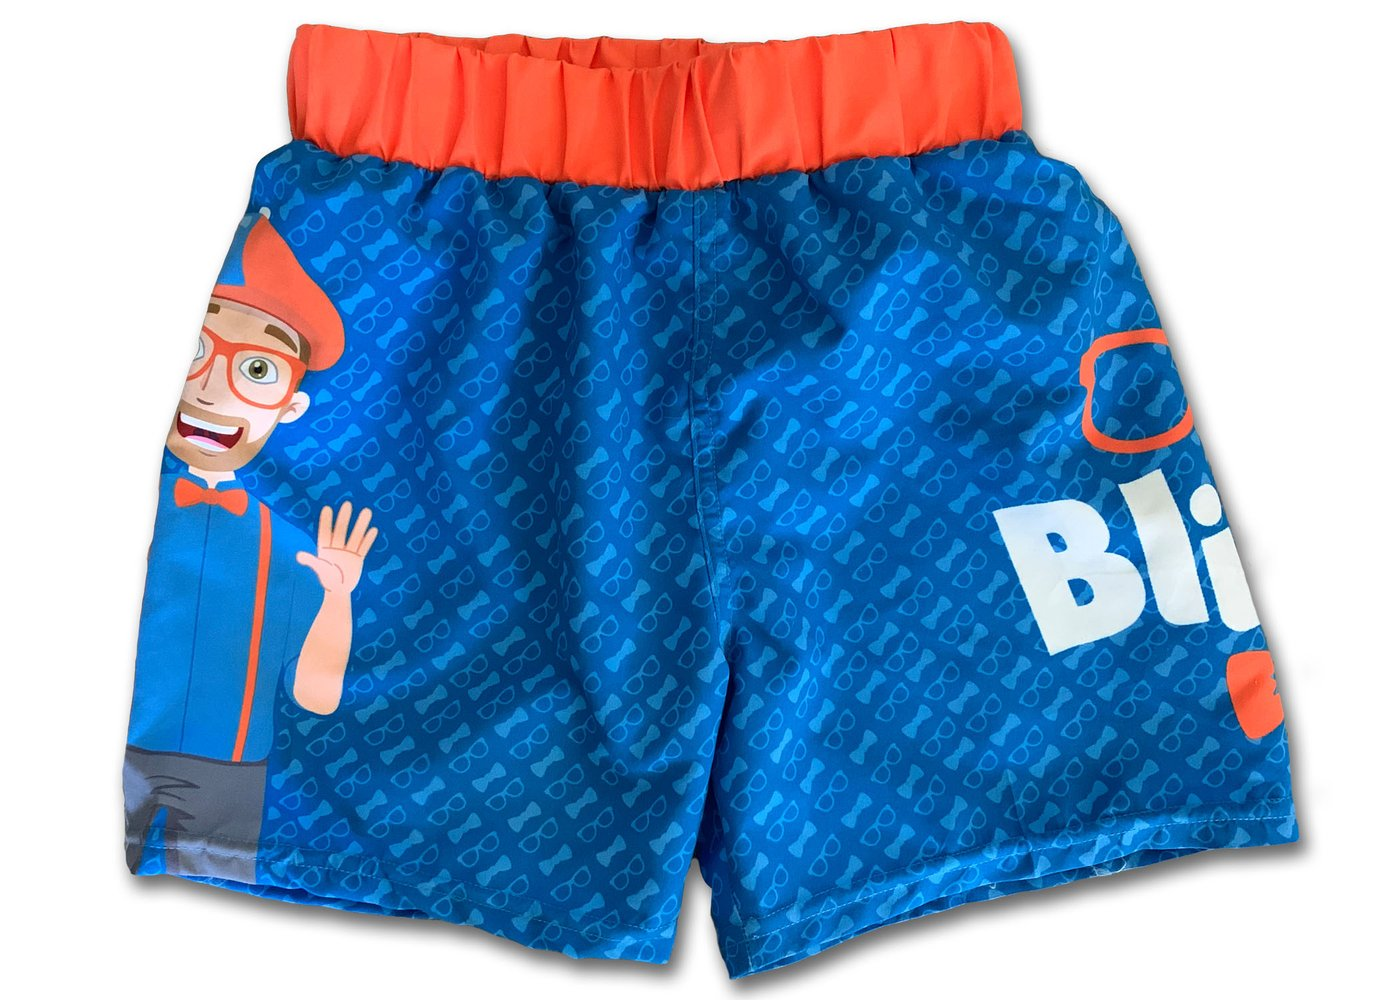 Blippi Official Child Blue /& Orange T-Shirt for Kids Size 4T USA Authentic